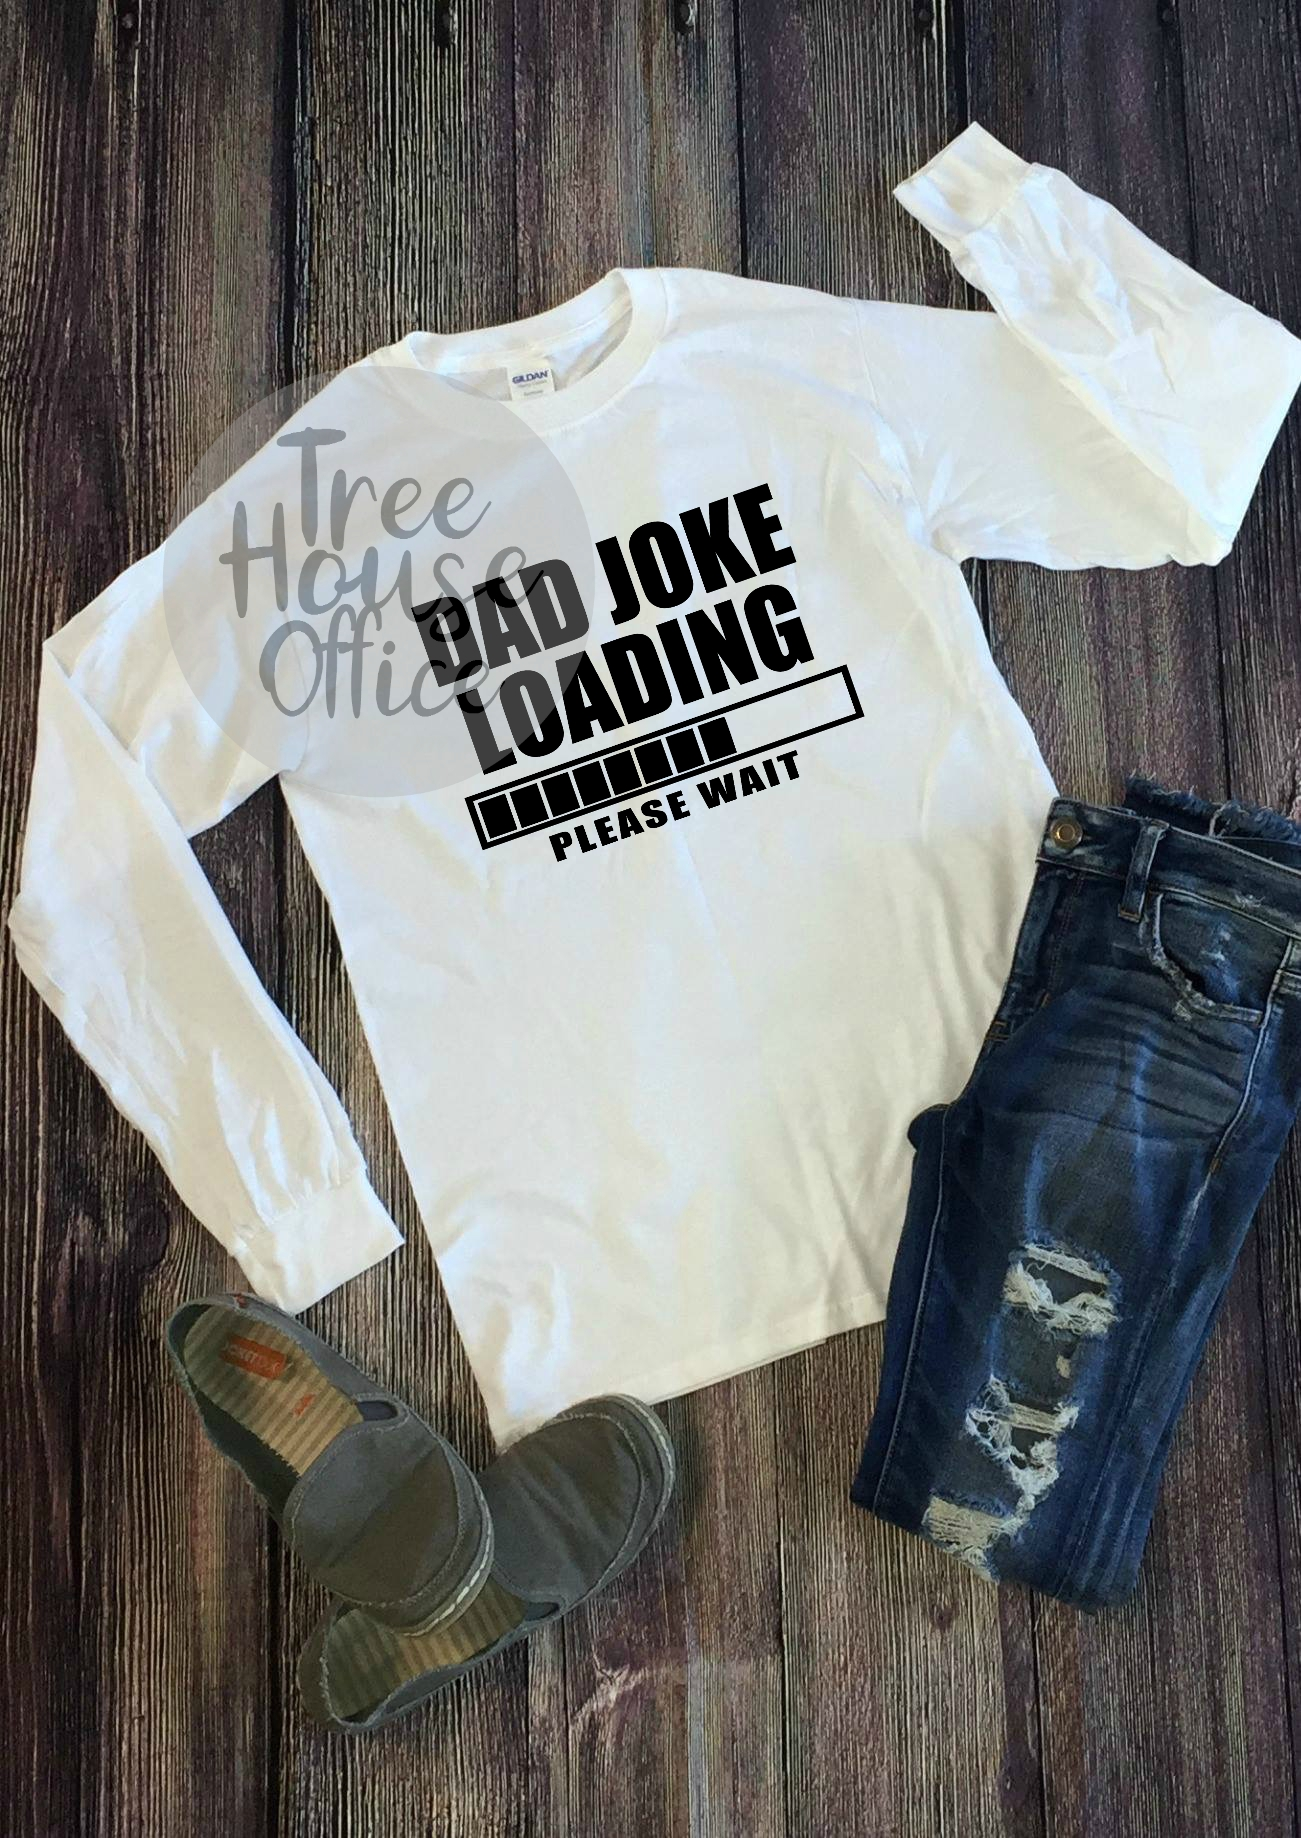 Dad Joke Loading Funny Father's Day SVG PNG Digital Cut File example image 2